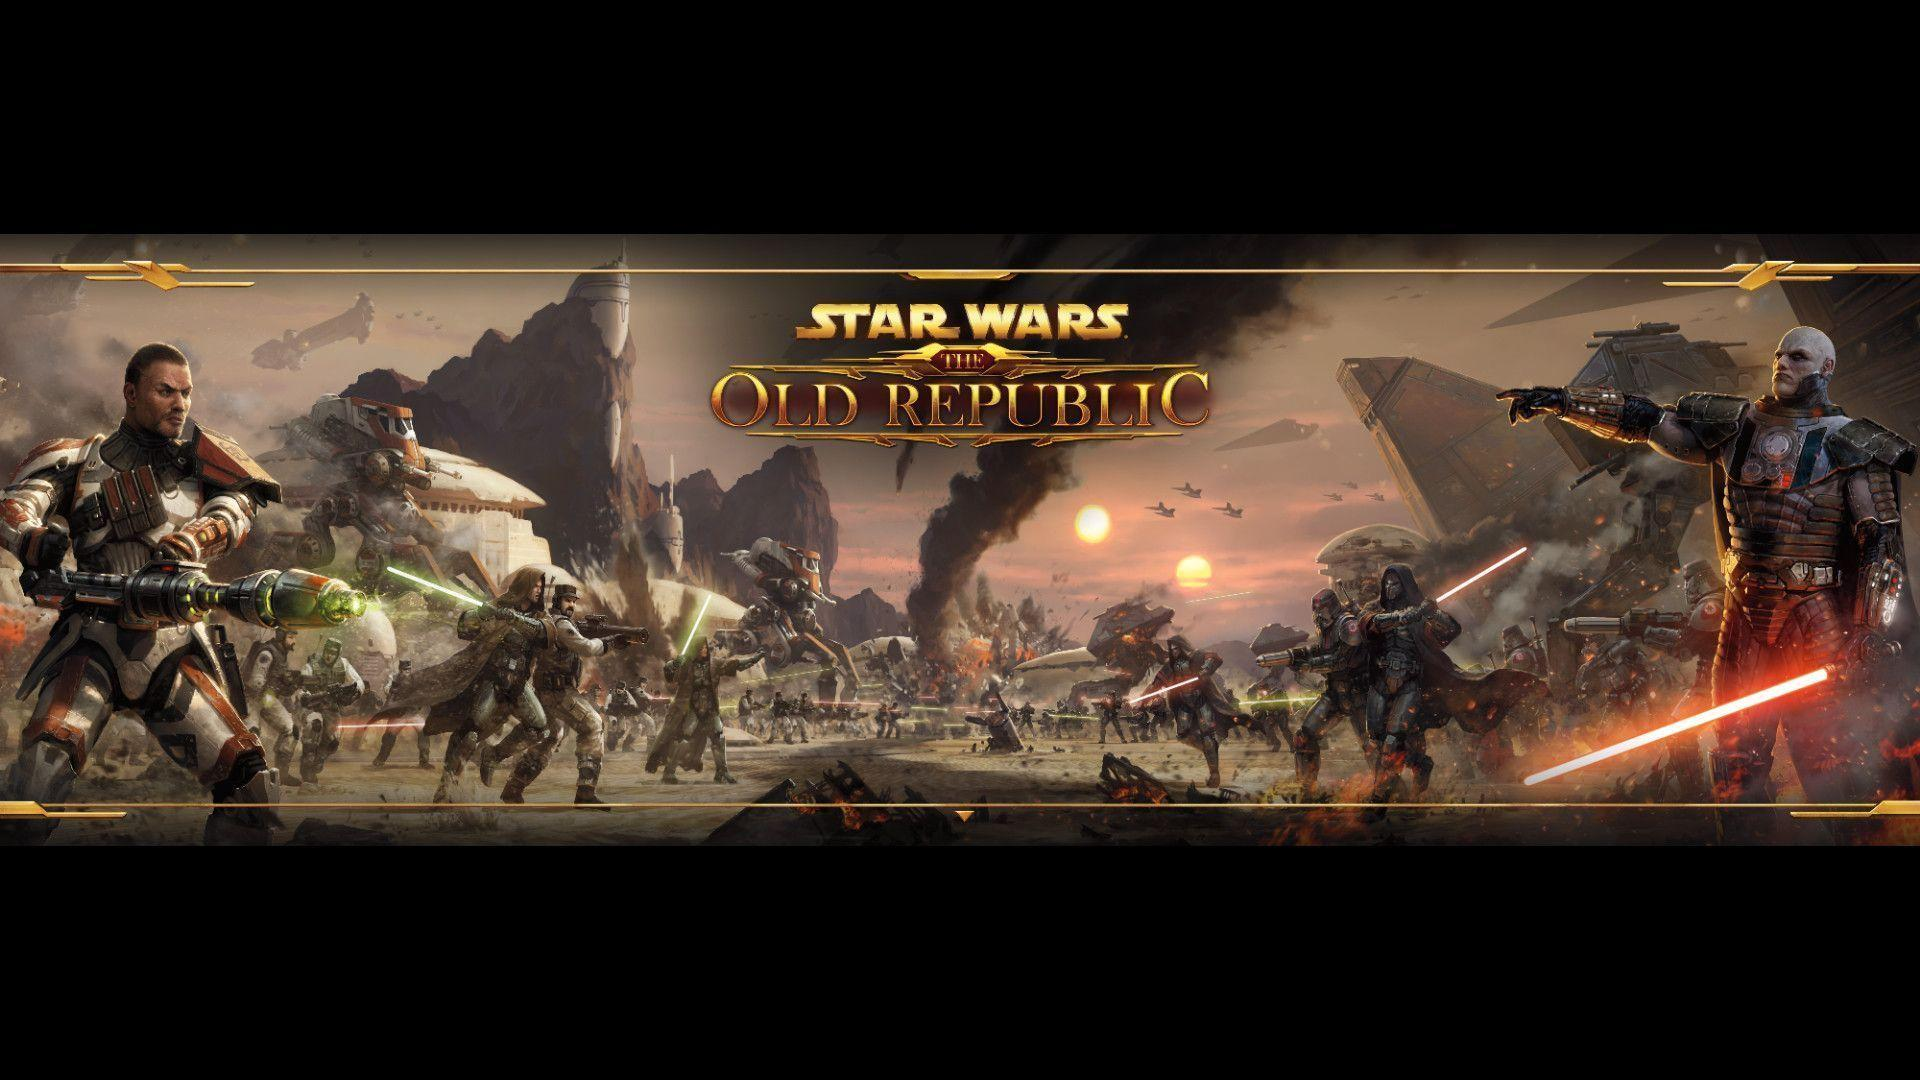 Swtor Wallpapers Hd Wallpaper Backgrounds